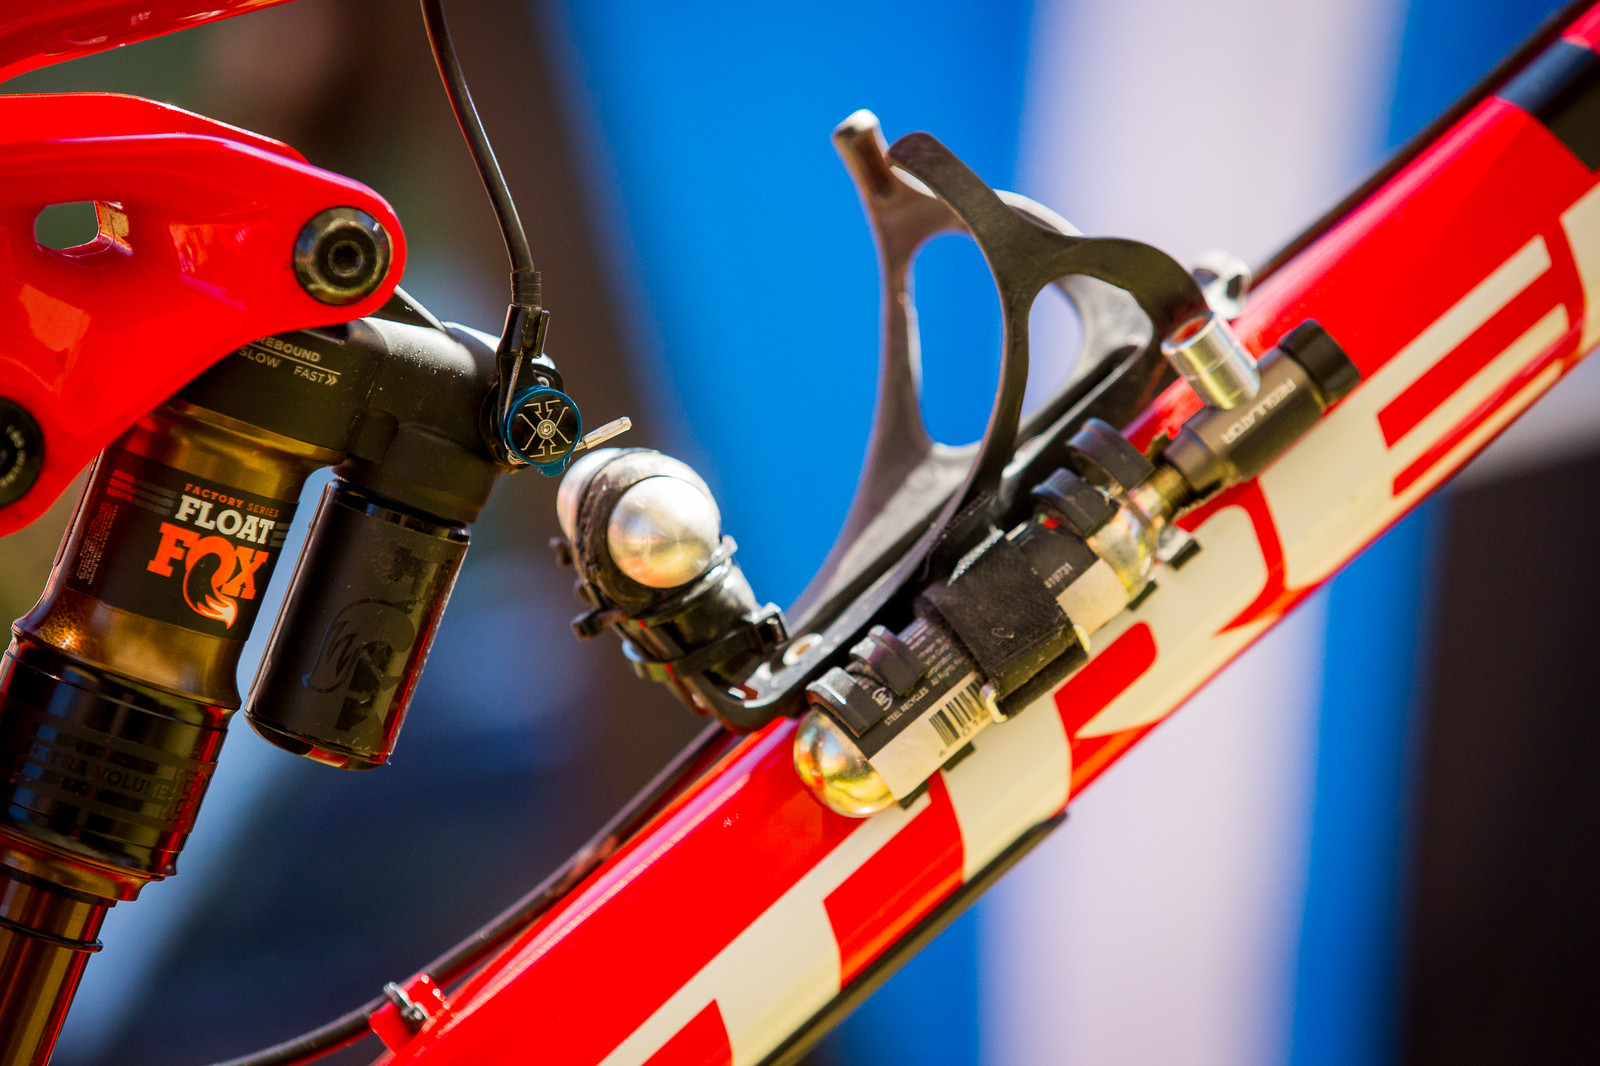 Rene Wildhaber's Fox Float Lockout and Flat Tire Plug and CO2 Set-up - PIT BITS - Enduro World Series, La Thuile, Italy - Mountain Biking Pictures - Vital MTB